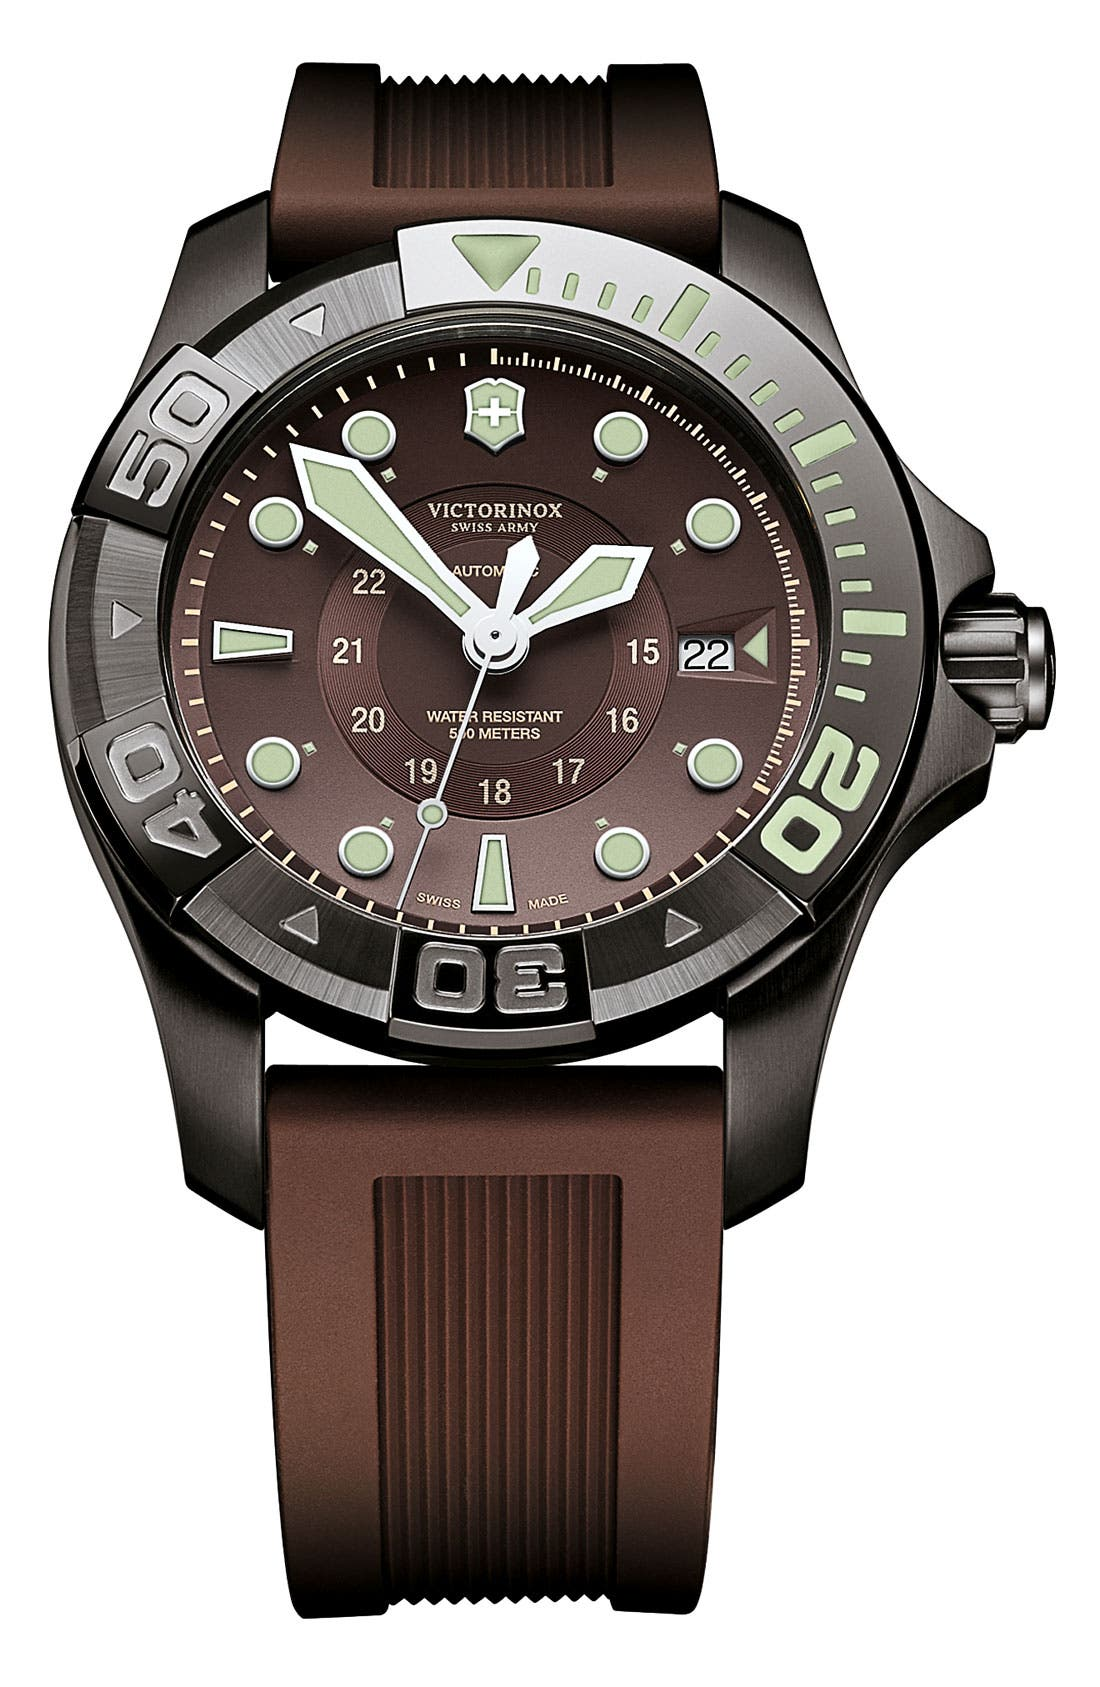 Alternate Image 1 Selected - Victorinox Swiss Army® 'Dive Master 550' Automatic Watch, 43mm